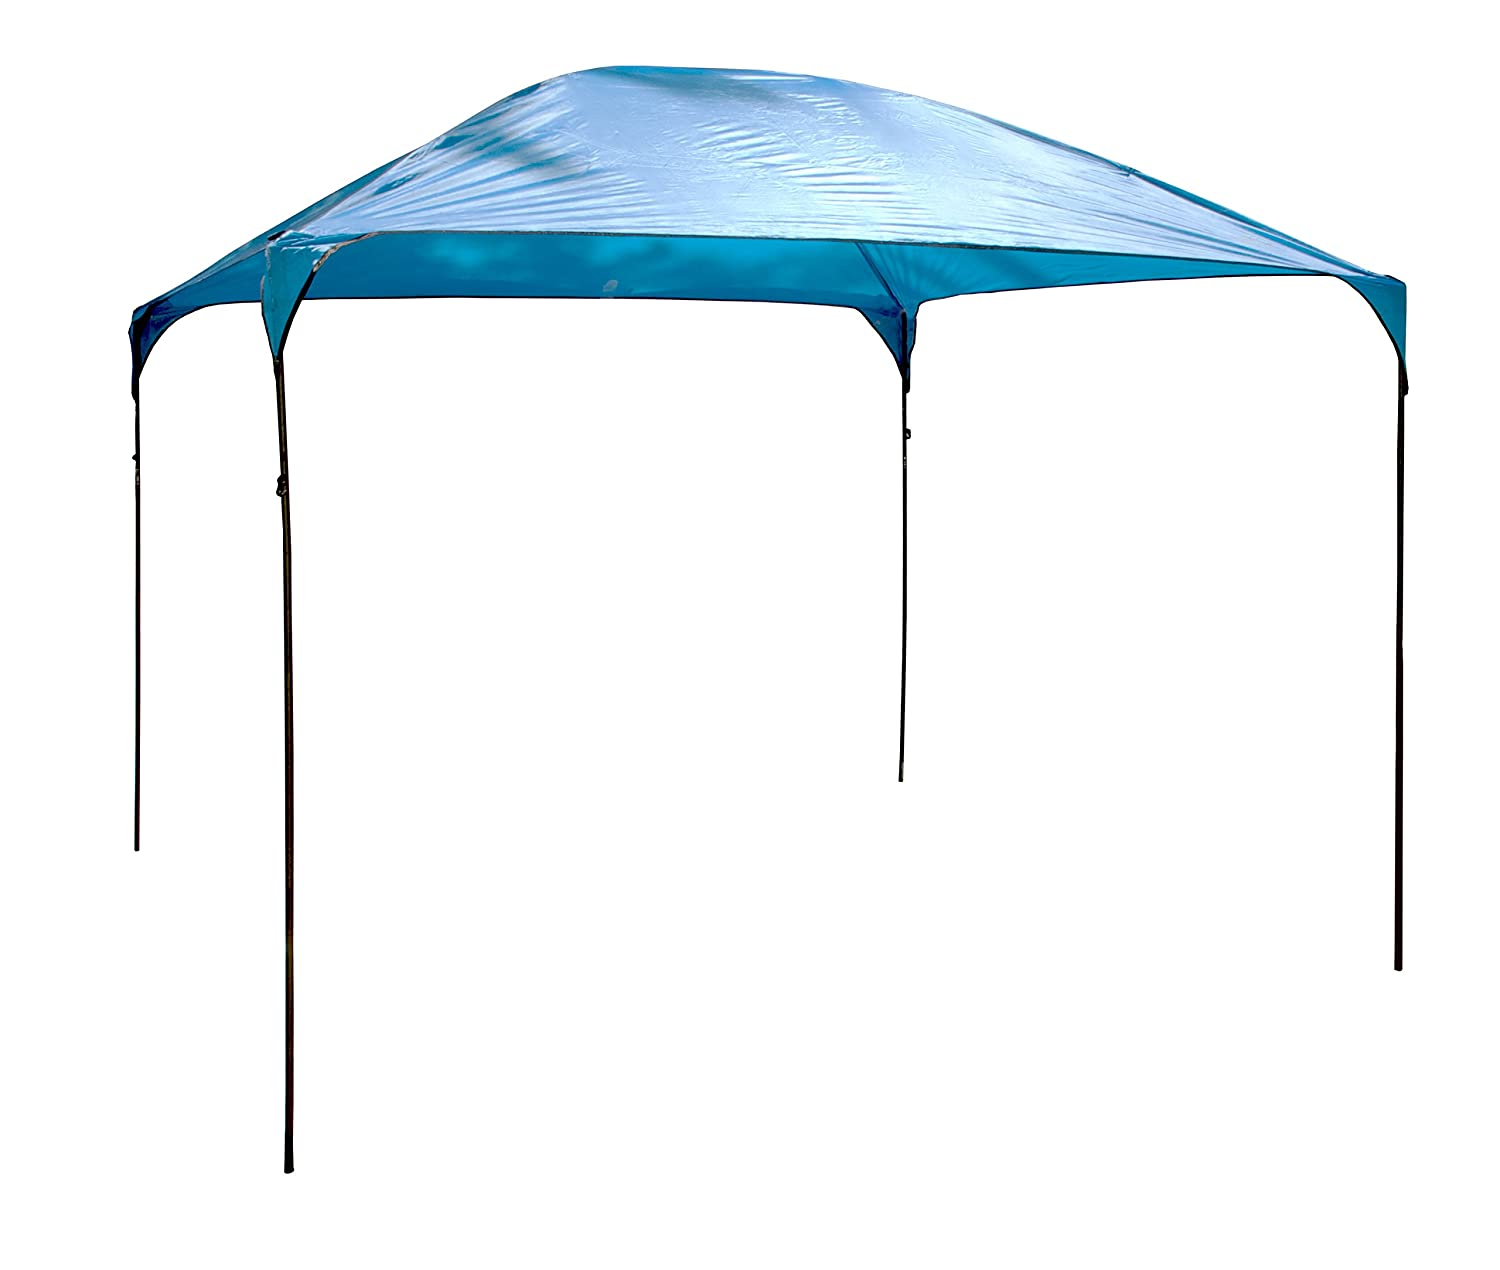 "Texsport Dining Shade Sun Canopy 9' x 9' x 84"" h with Storage Bag"